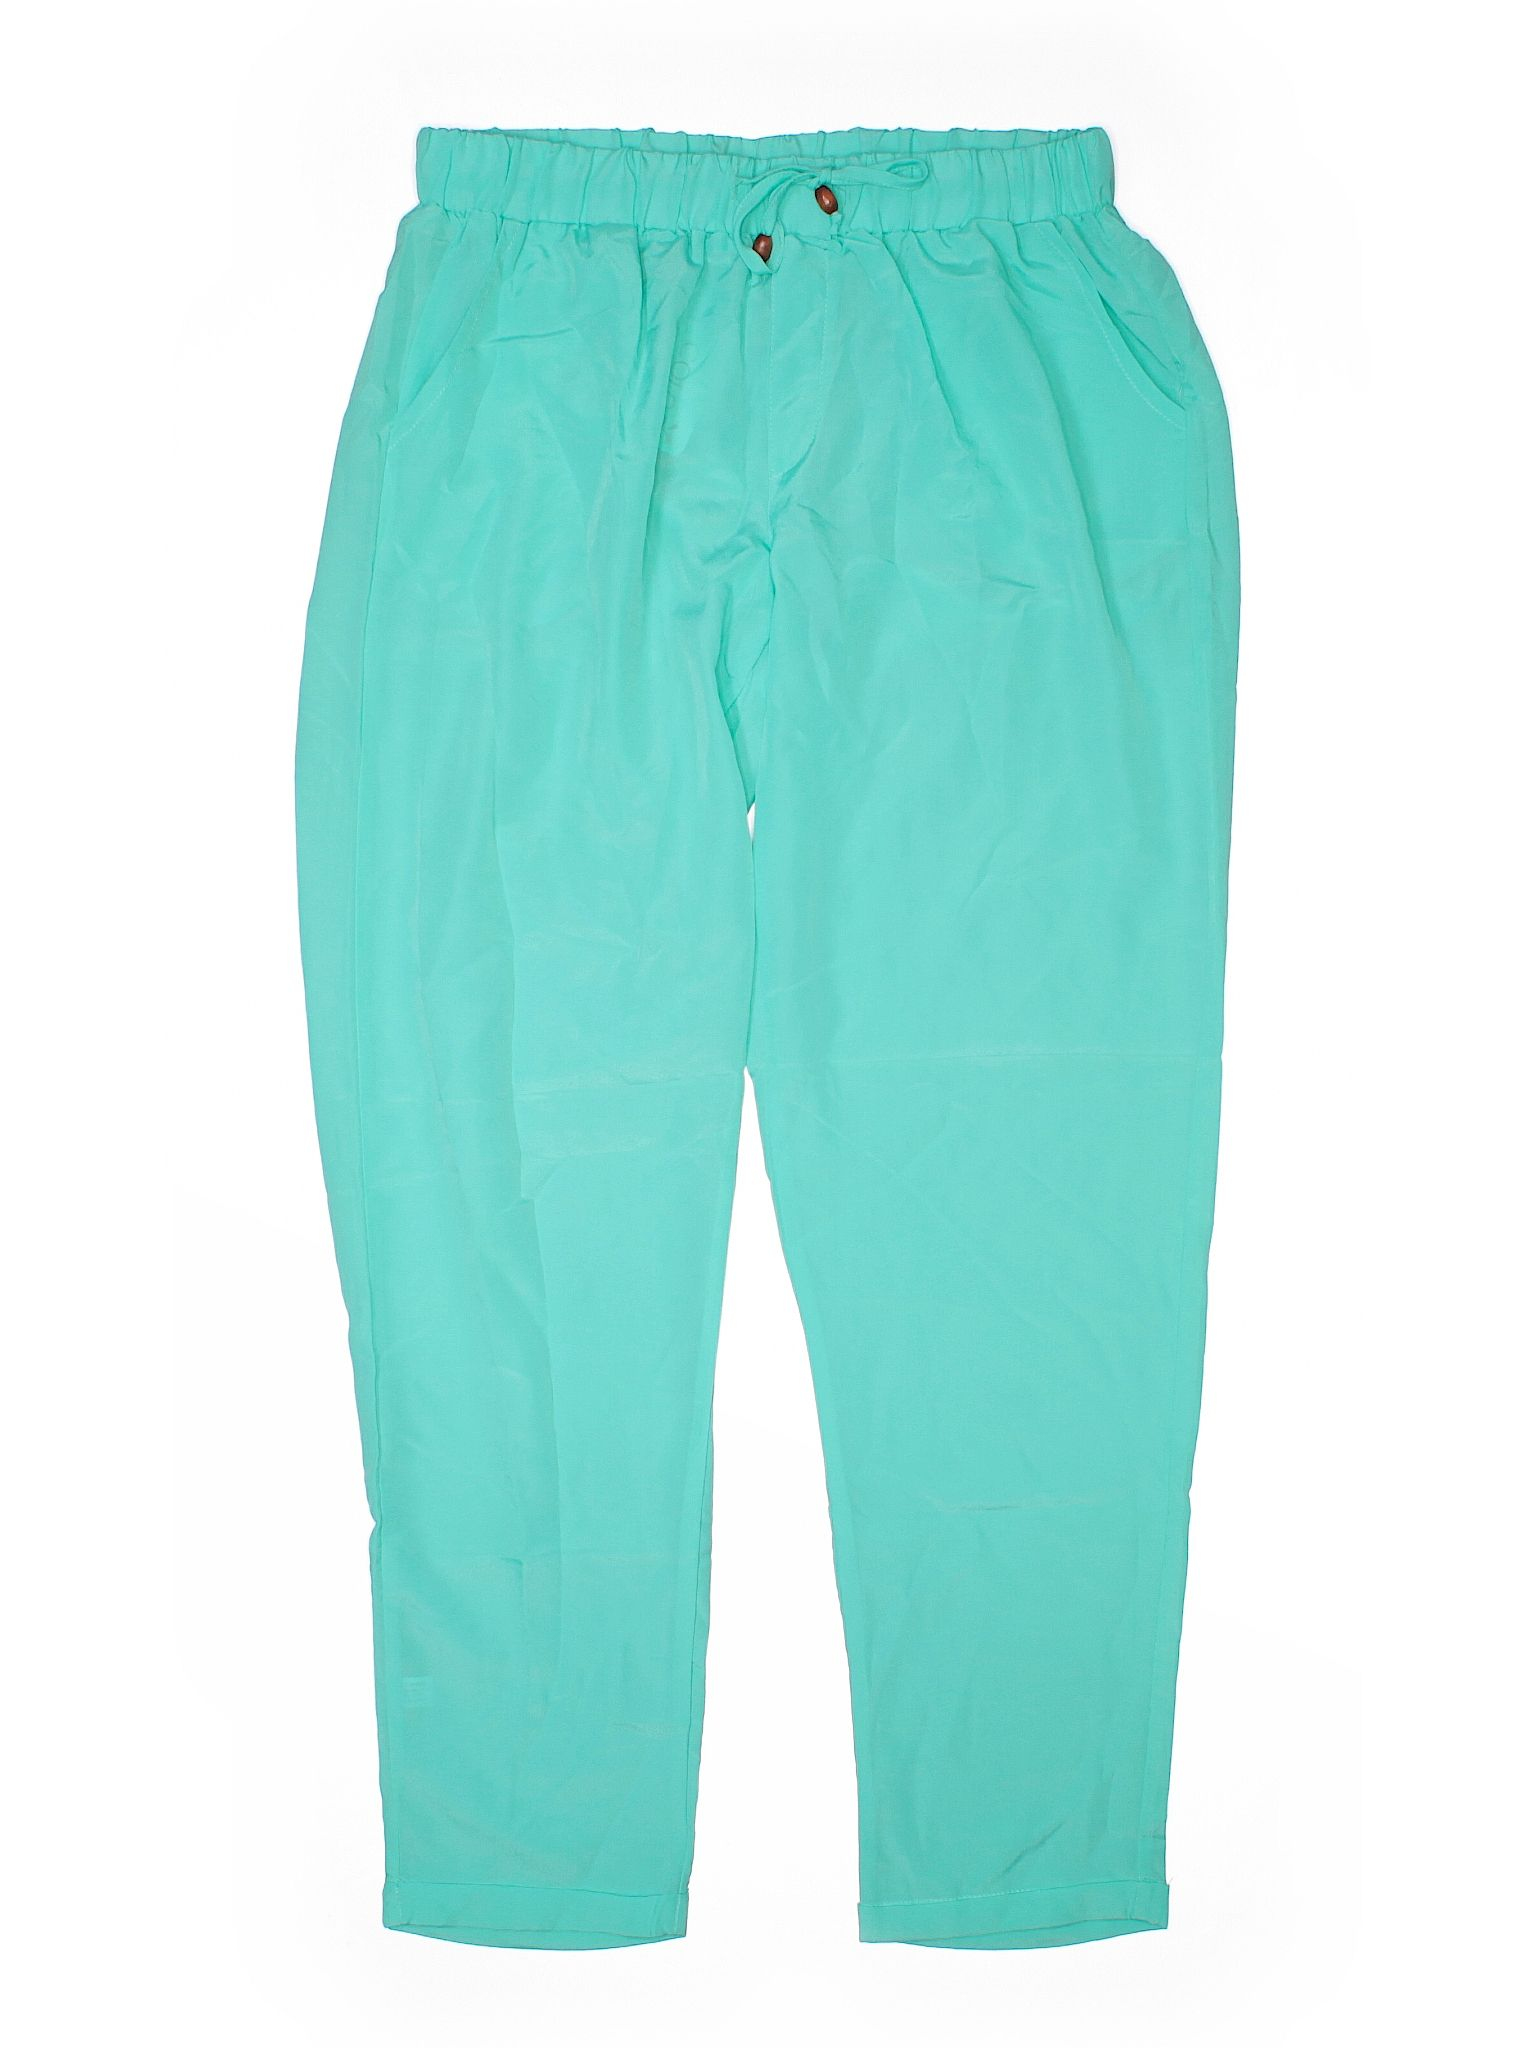 All For Color Casual Pants Size 800 Teal Womens Bottoms